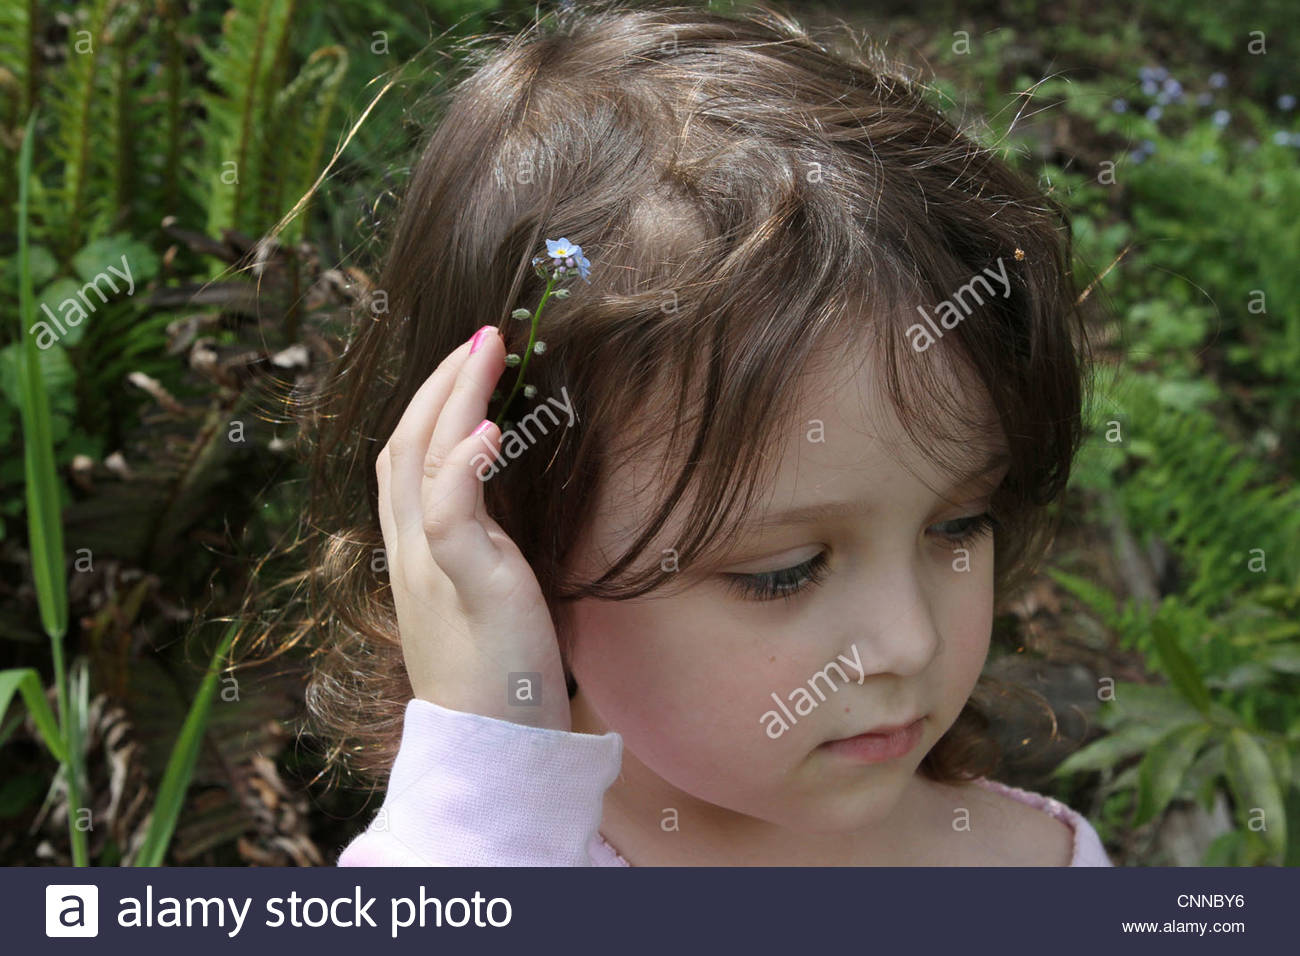 A close up of a little girl with a flower in her hair. - Stock Image